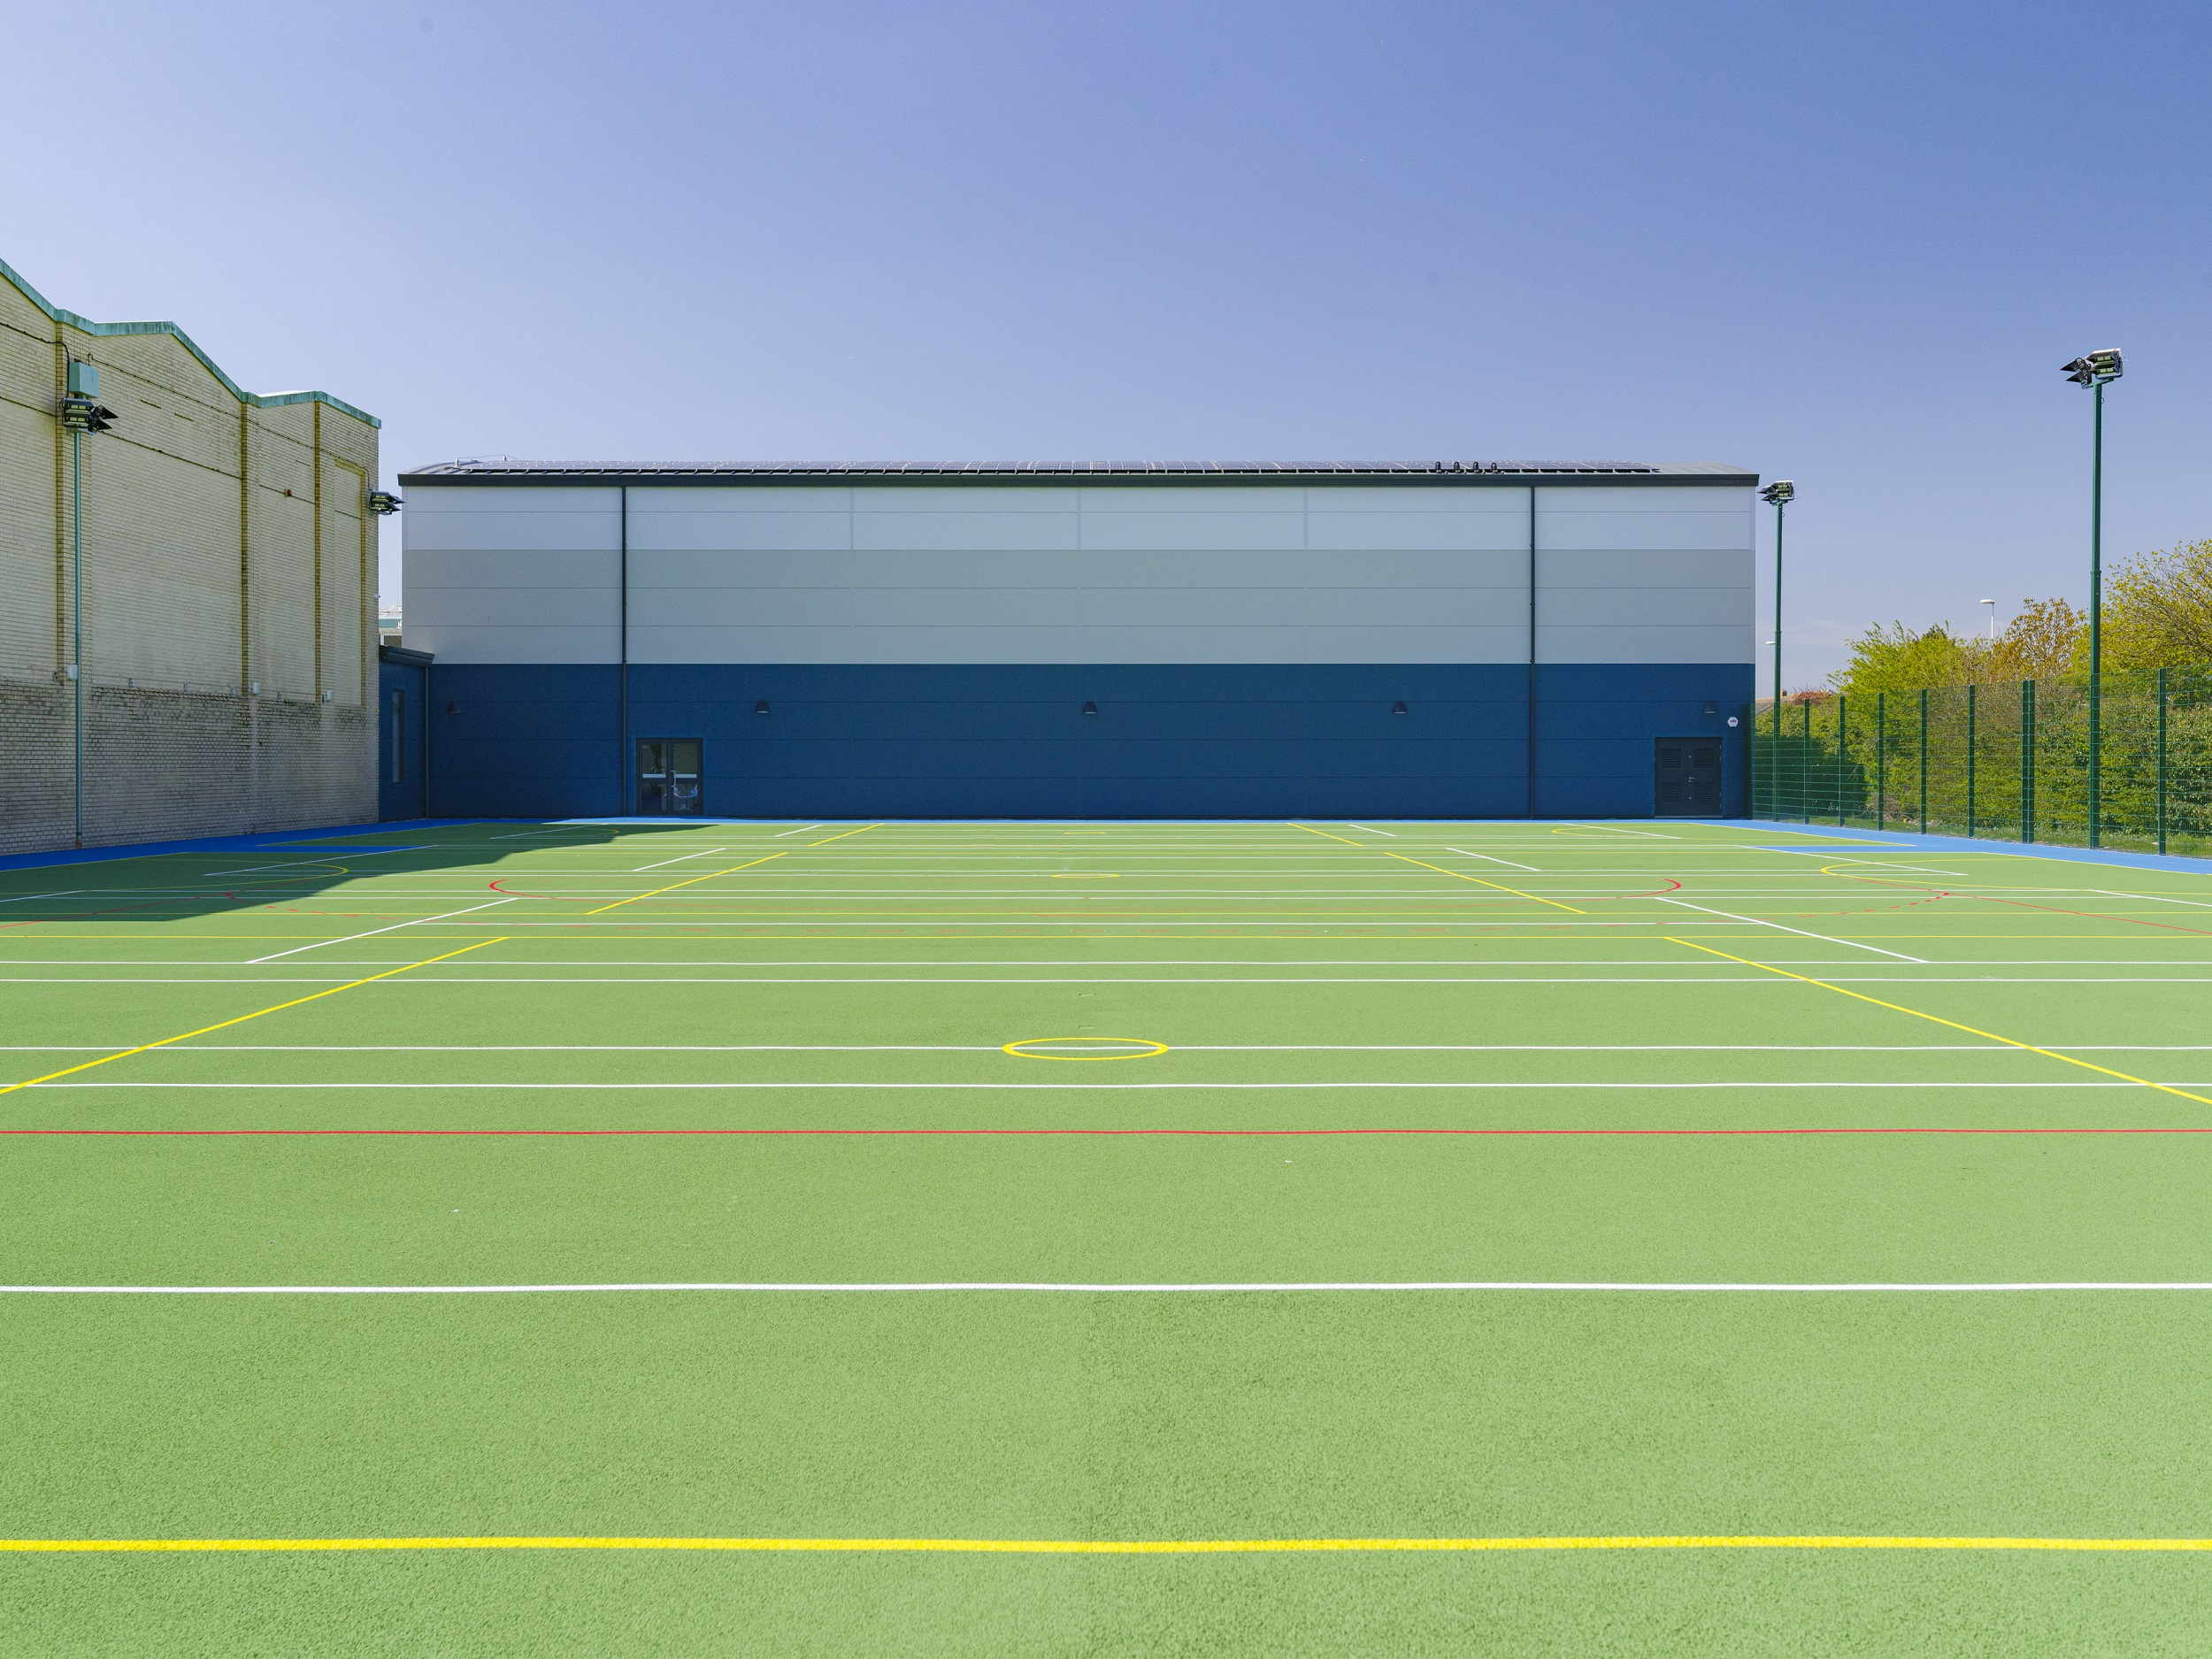 Delight at Durrington High as Collinson completes new £1.73m sports facility